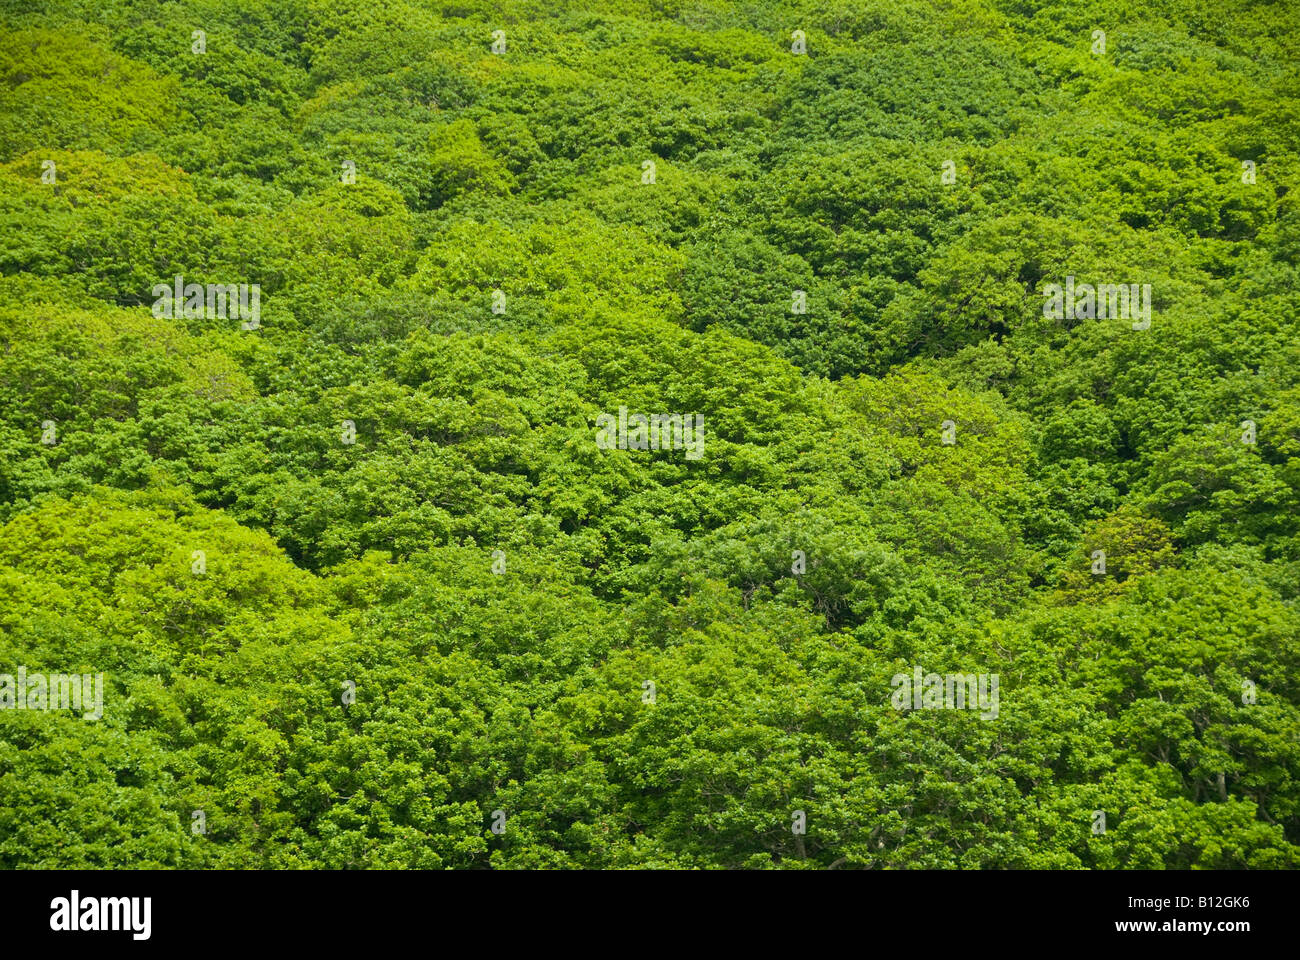 Green tree canopy of Oak trees in Britain - Stock Image